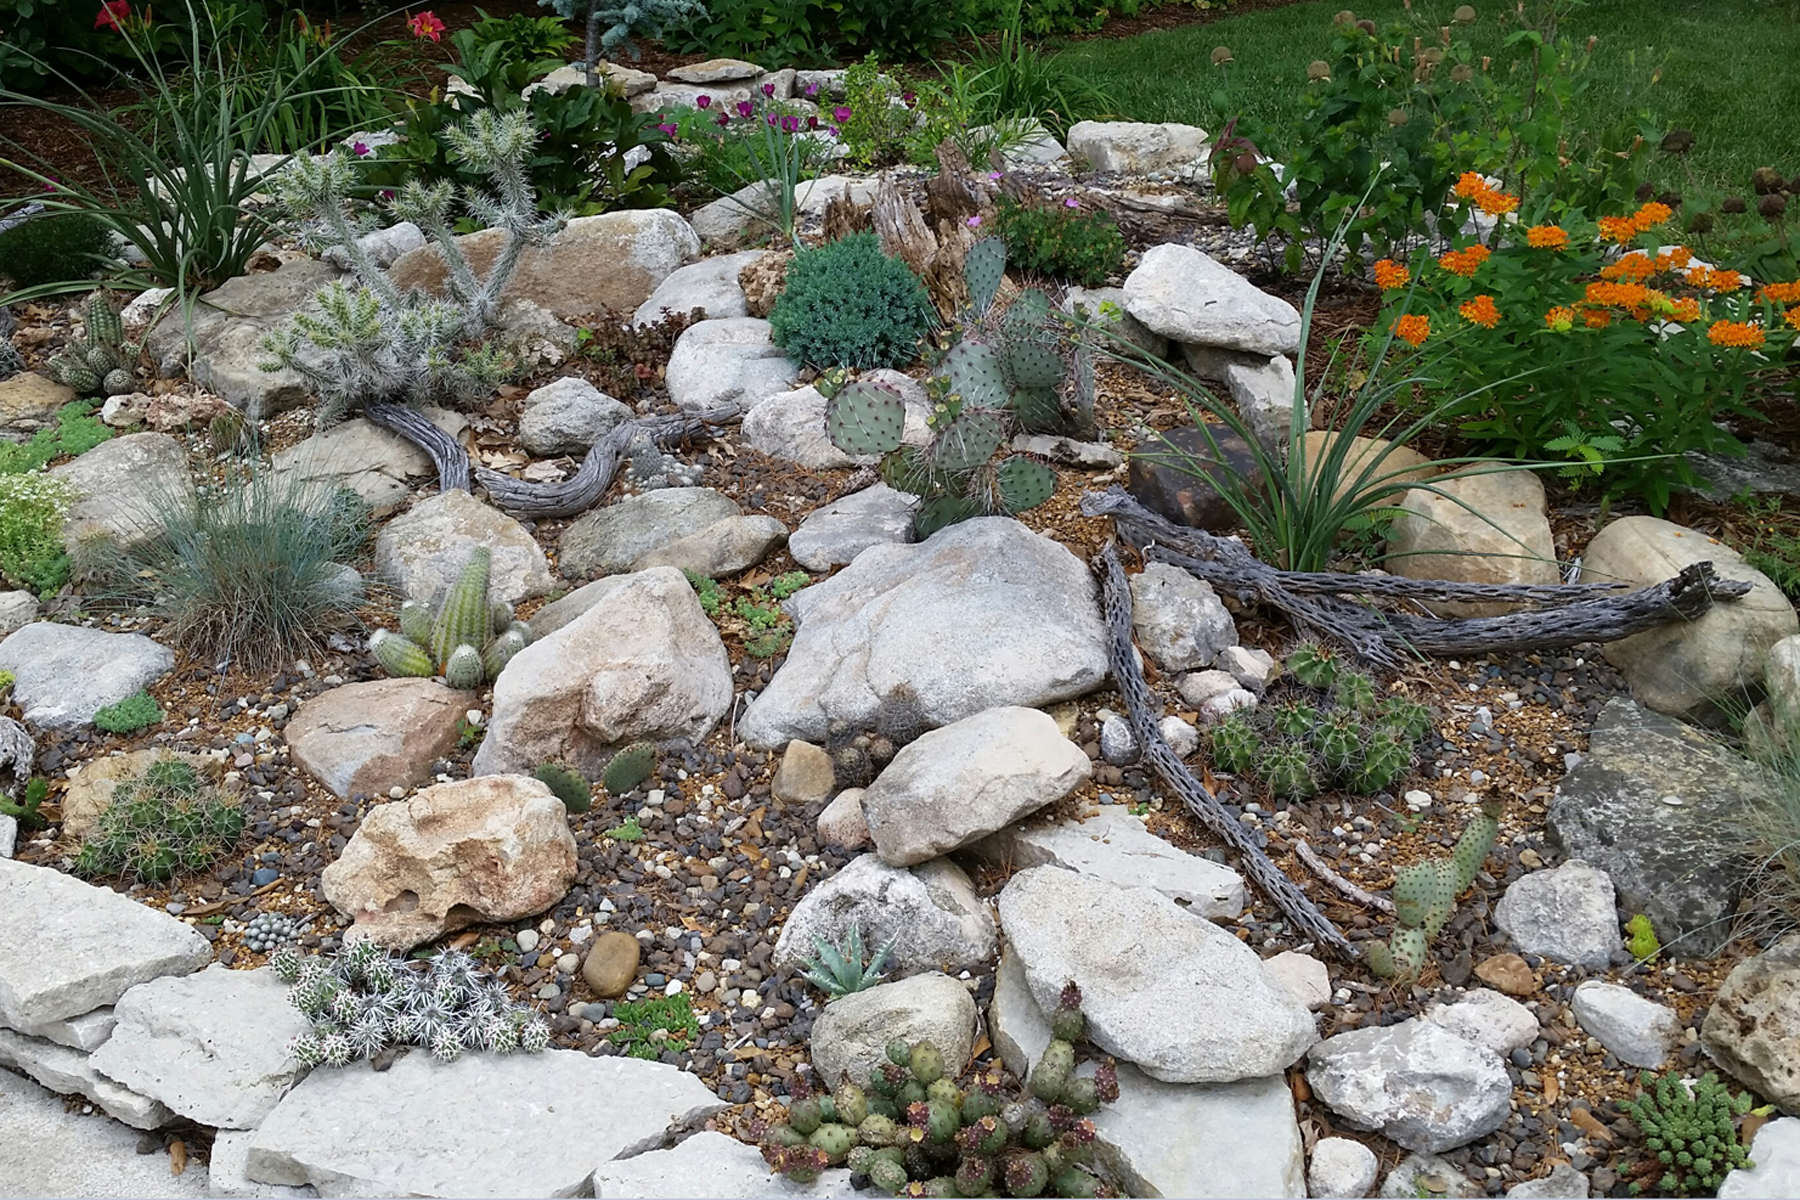 Cold Hardy Cactus And Succulent Gardening The Gateway Gardener